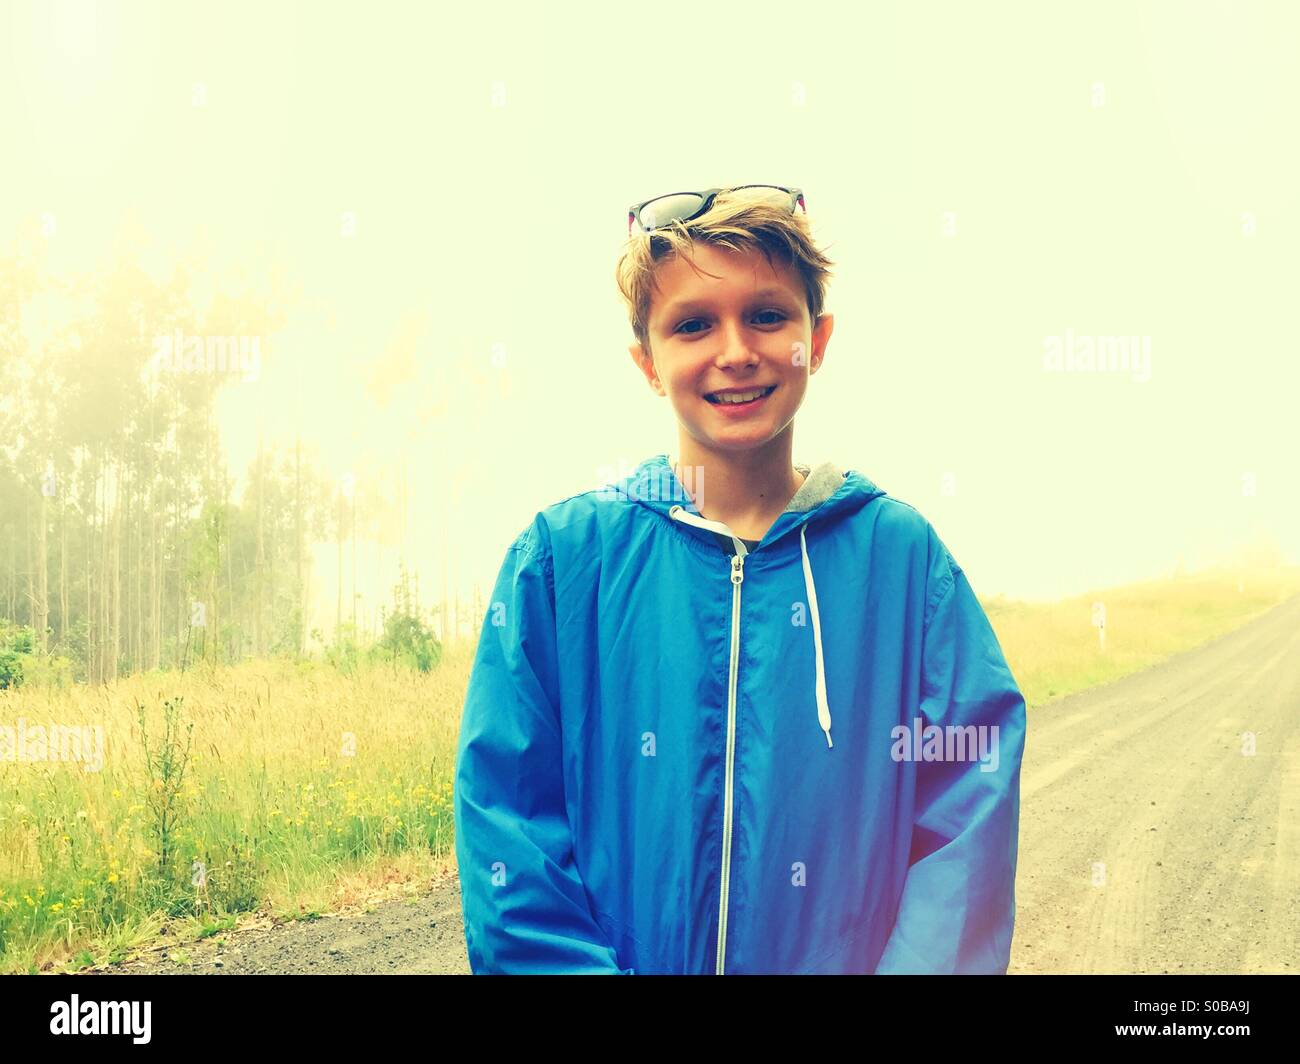 A smiling 11 year old boy photographed whilst out for a walk - Stock Image